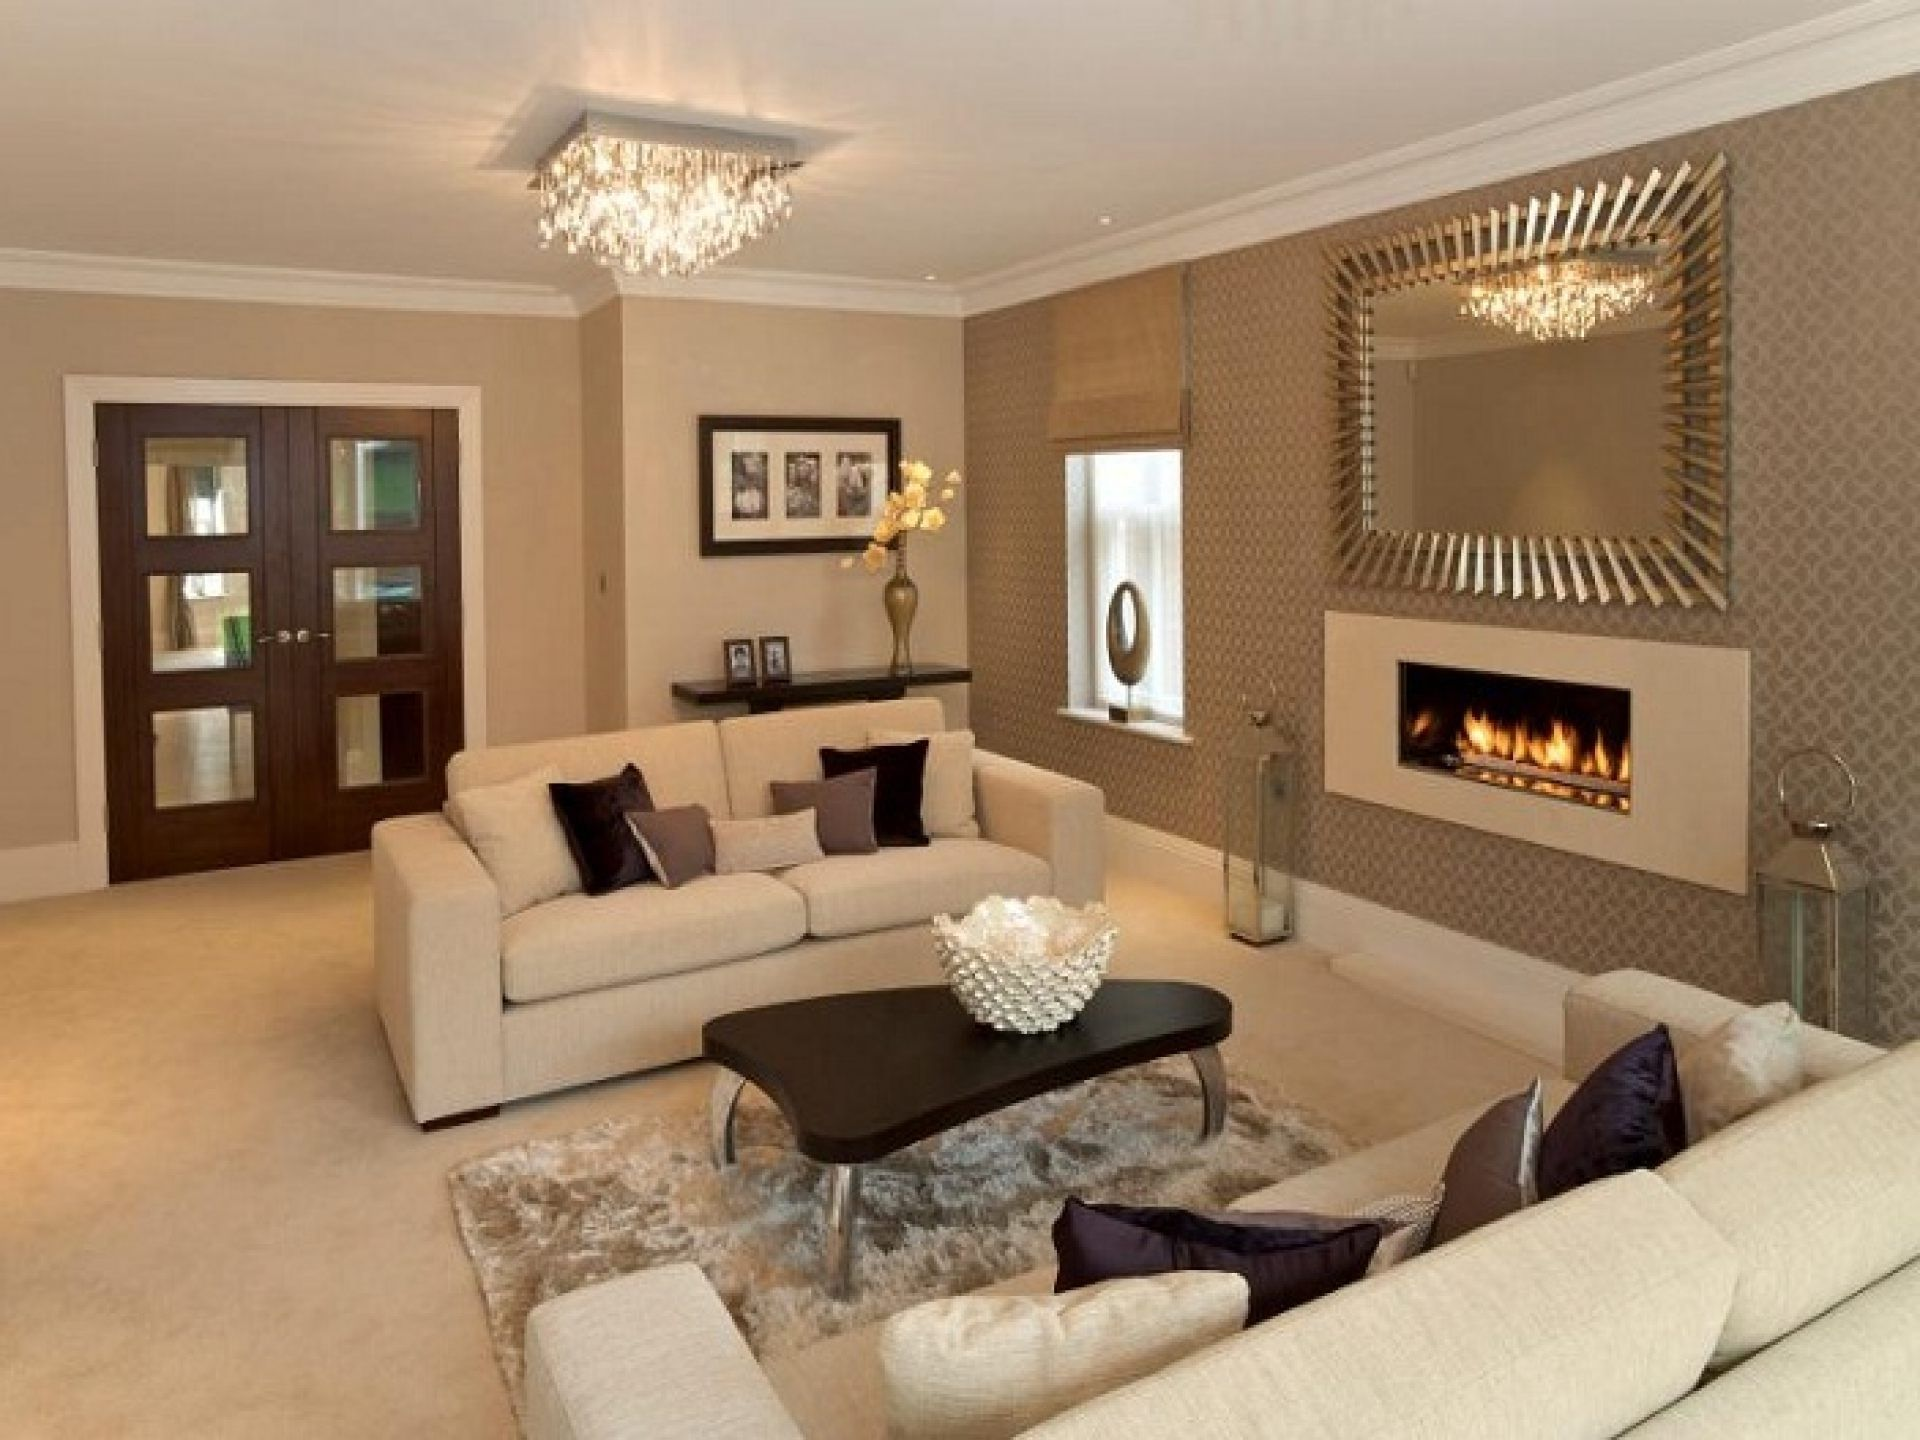 Decorating ideas for living room walls charming relaxing paint colors for living room relaxing decor with